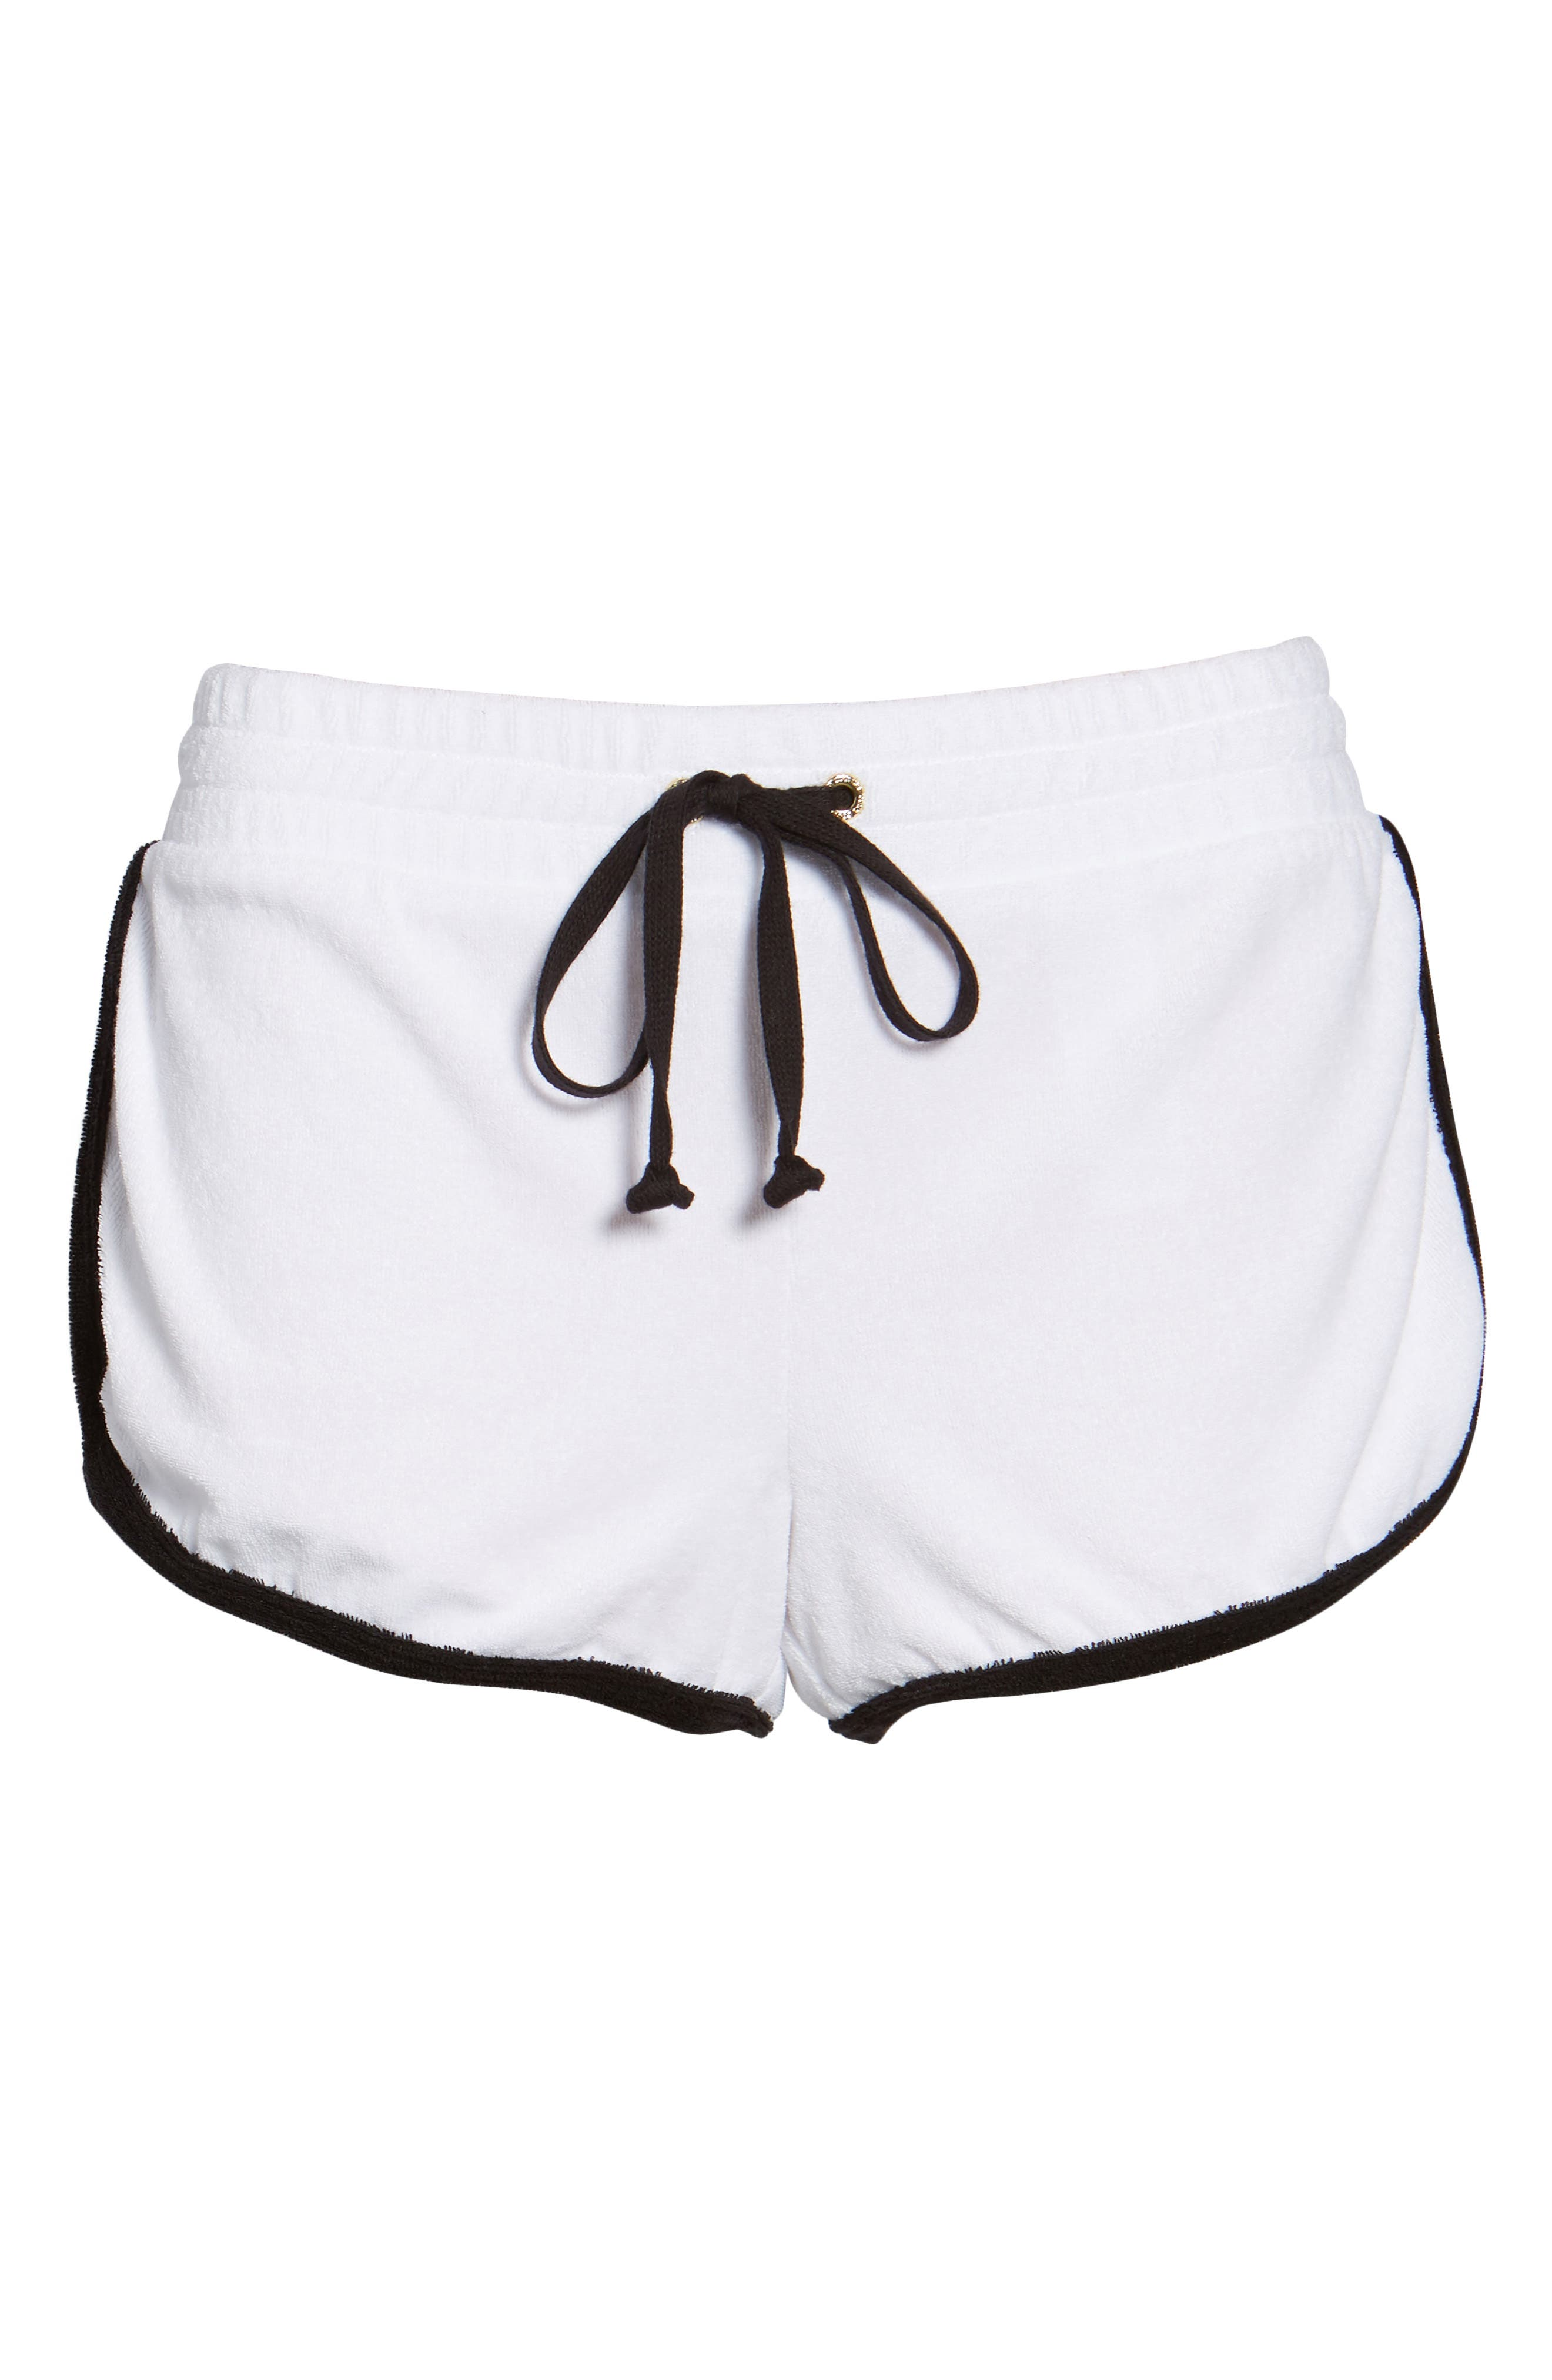 Venice Beach Microterry Shorts,                             Alternate thumbnail 6, color,                             119